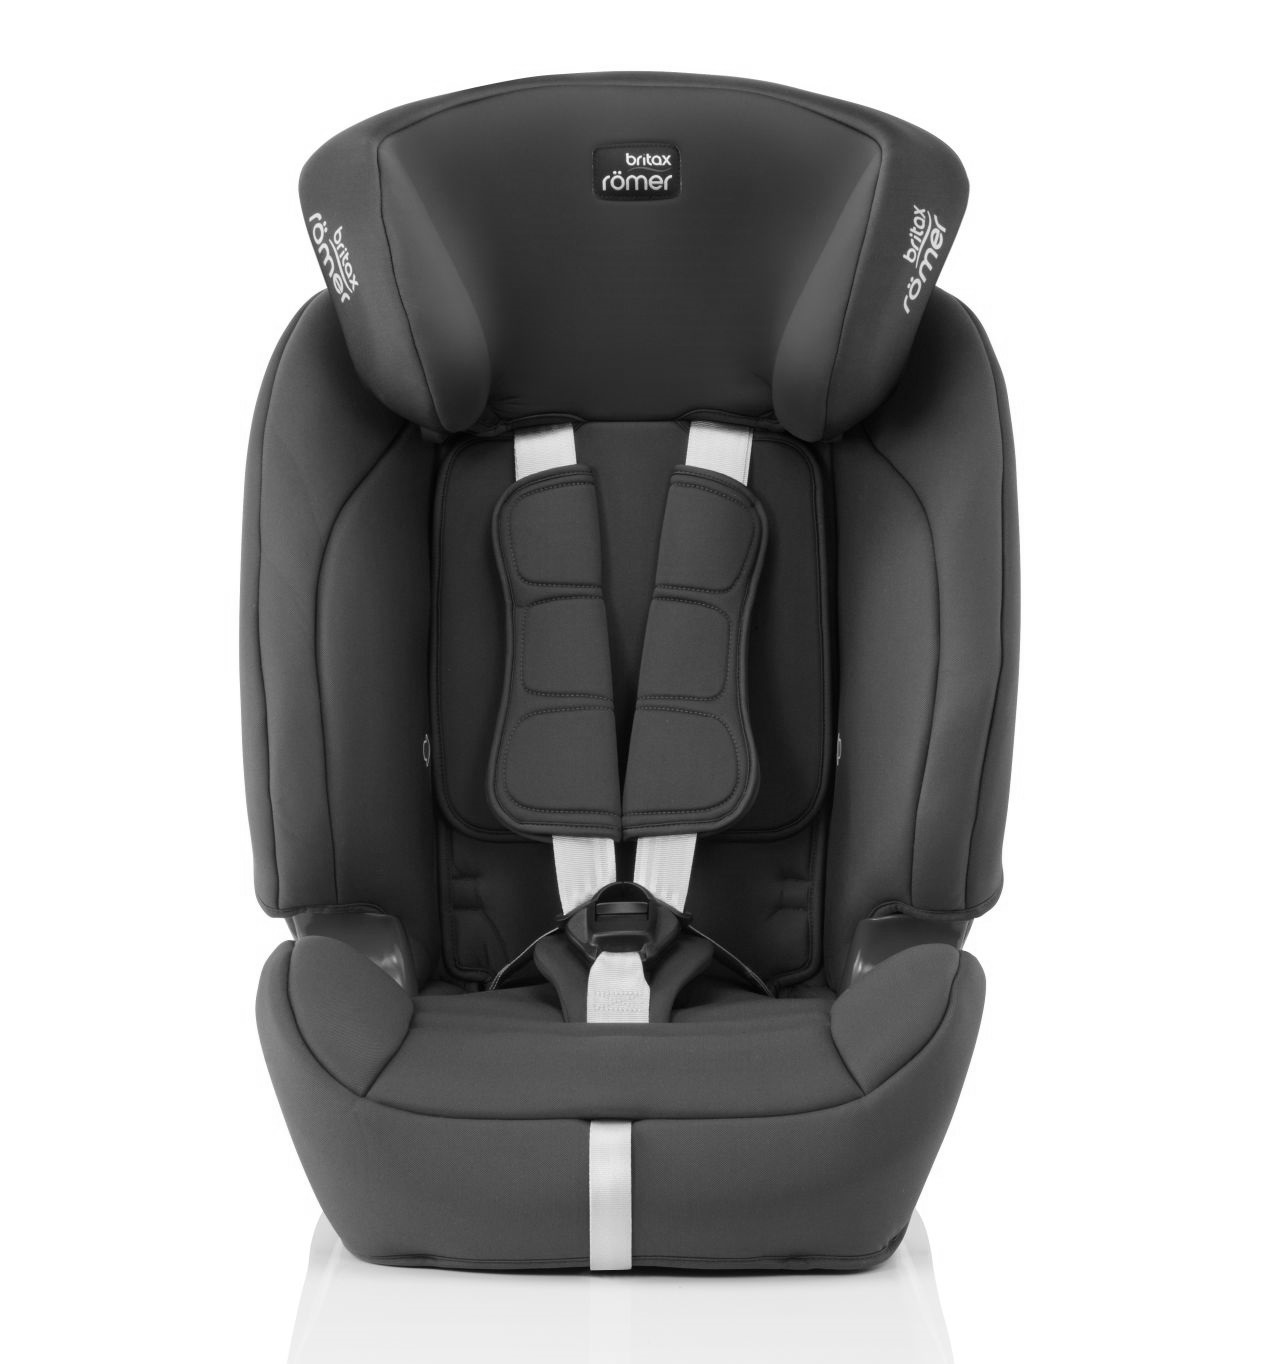 britax r mer kindersitz evolva 1 2 3 sl sict isofix 2019. Black Bedroom Furniture Sets. Home Design Ideas